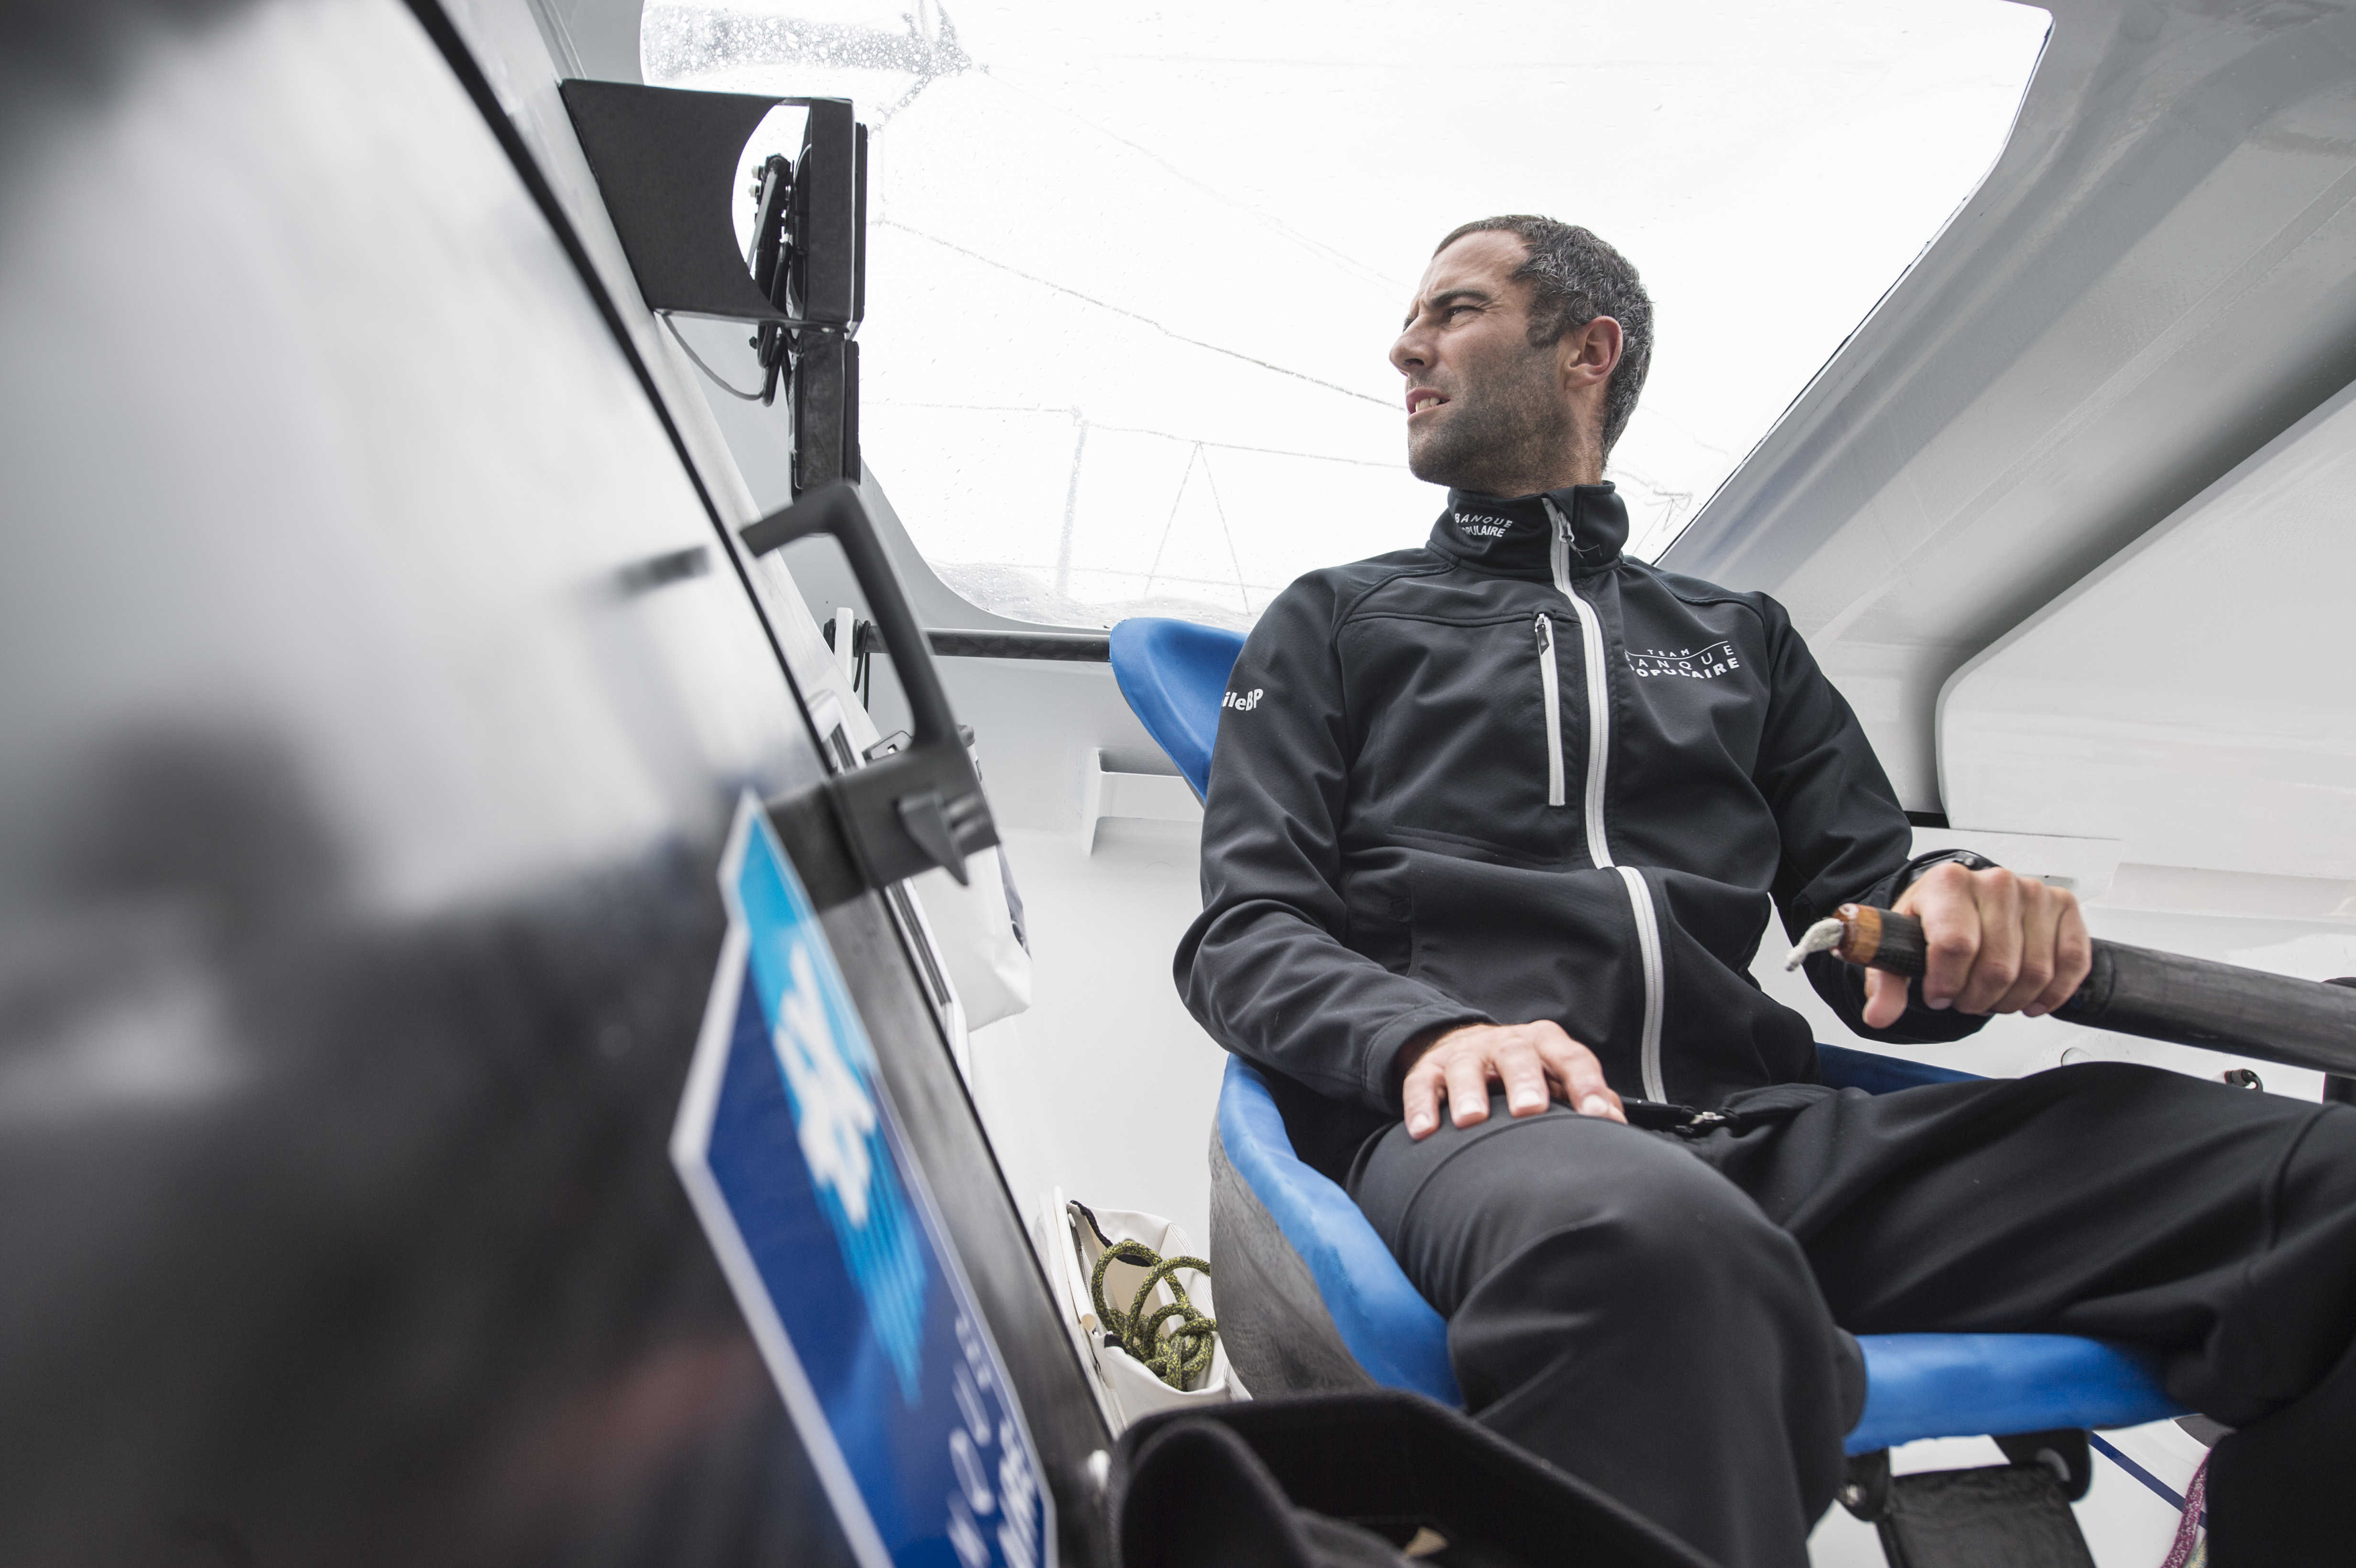 Plymouth > Lorient 19>20/08/2015Armel Le-Cleac-h, Erwan Tabarly Photo / Vincent Curutchet / Banque Populaire